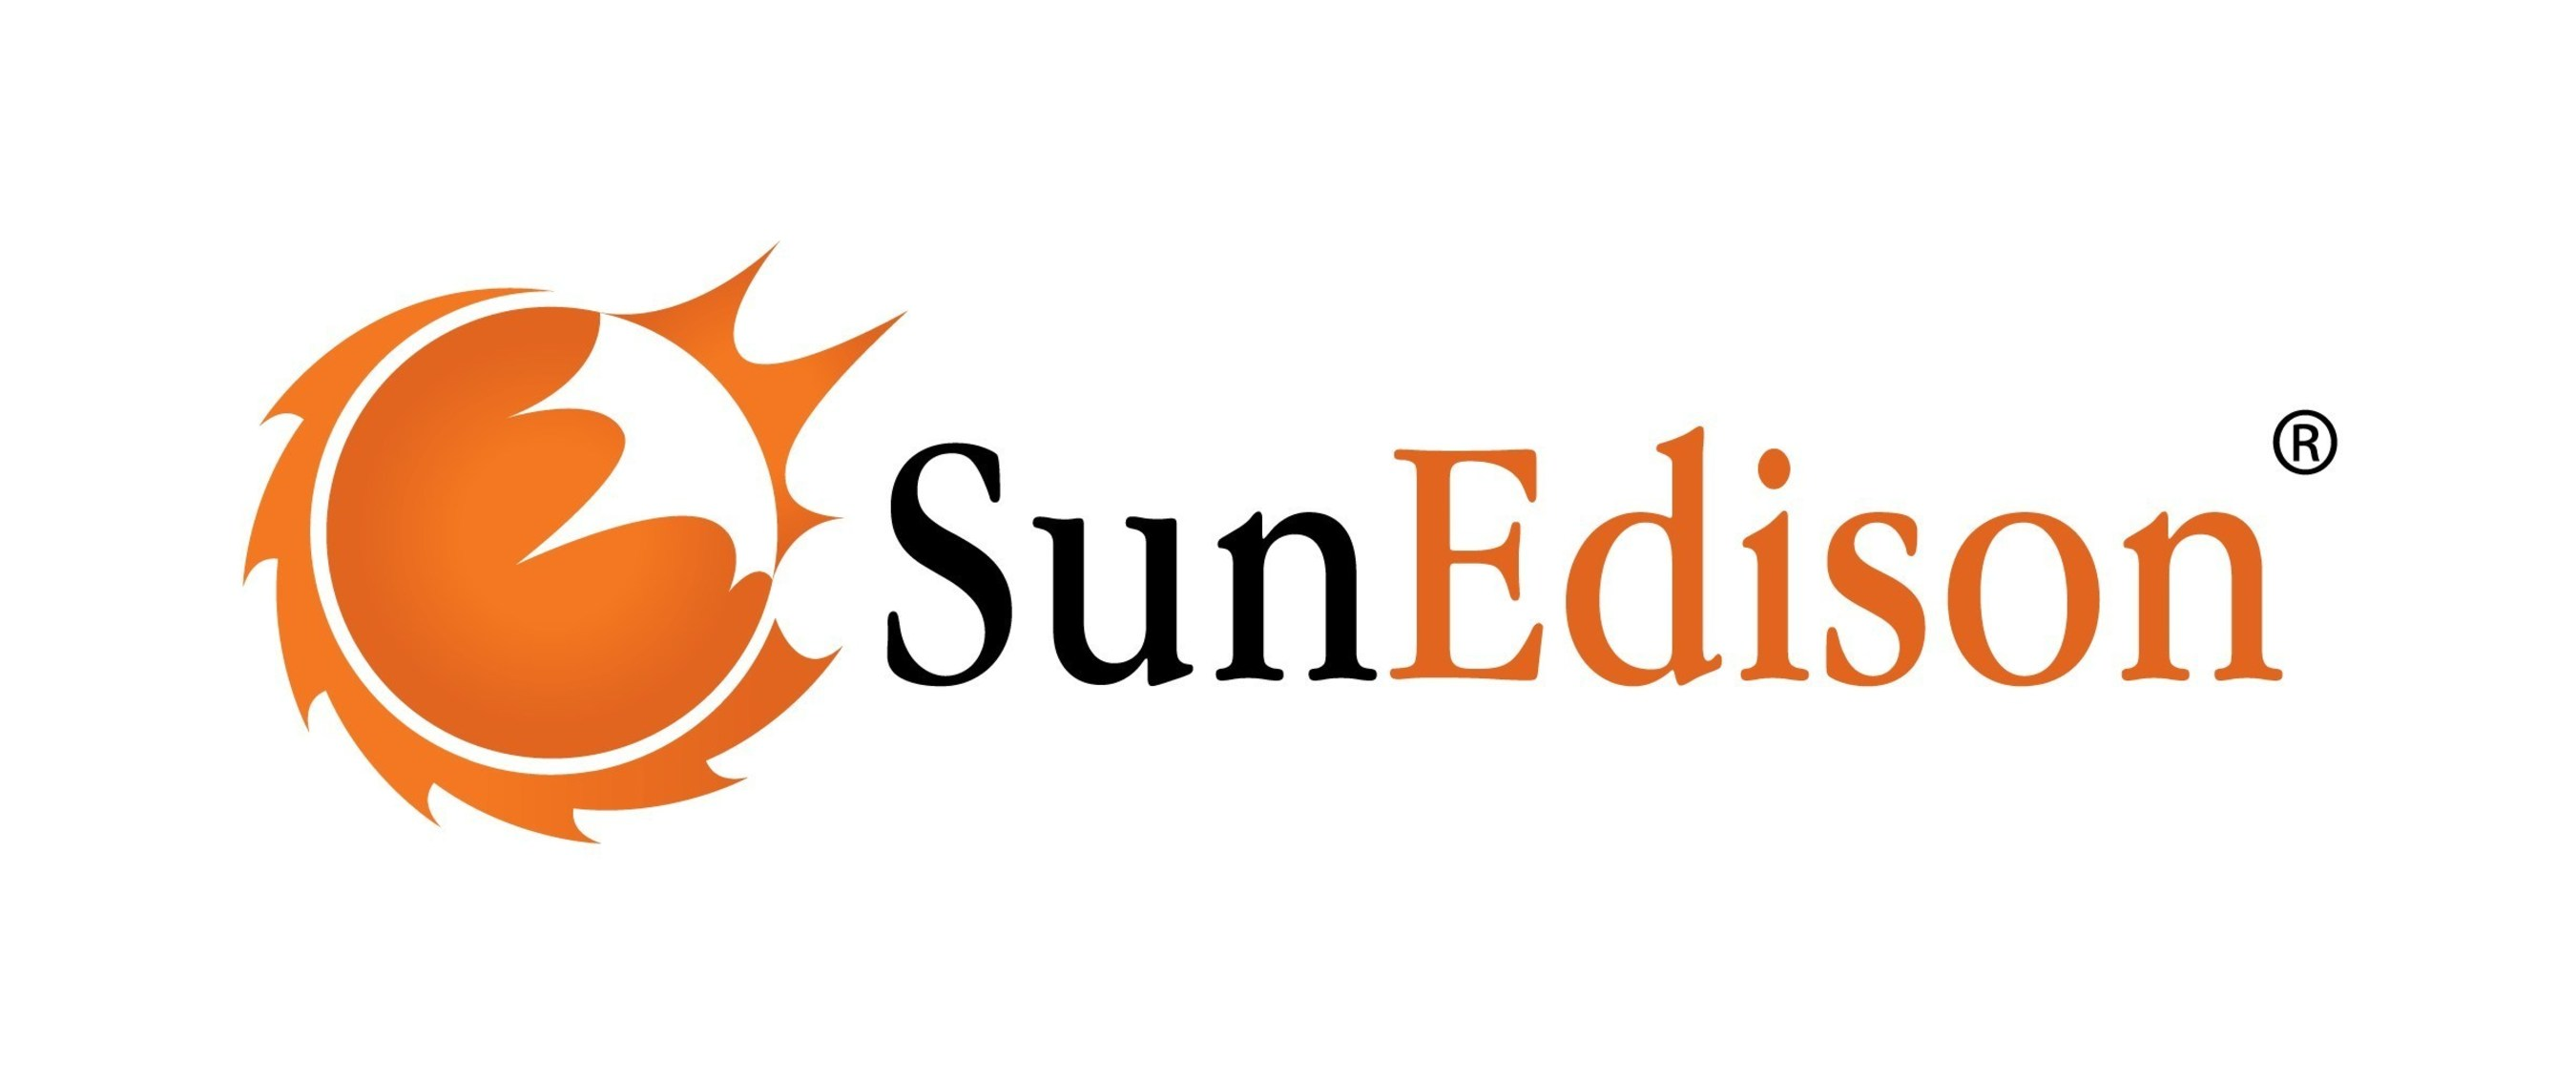 SunEdison Closes Financing and Starts Construction of a 185-Megawatt Wind Energy Project in Maine